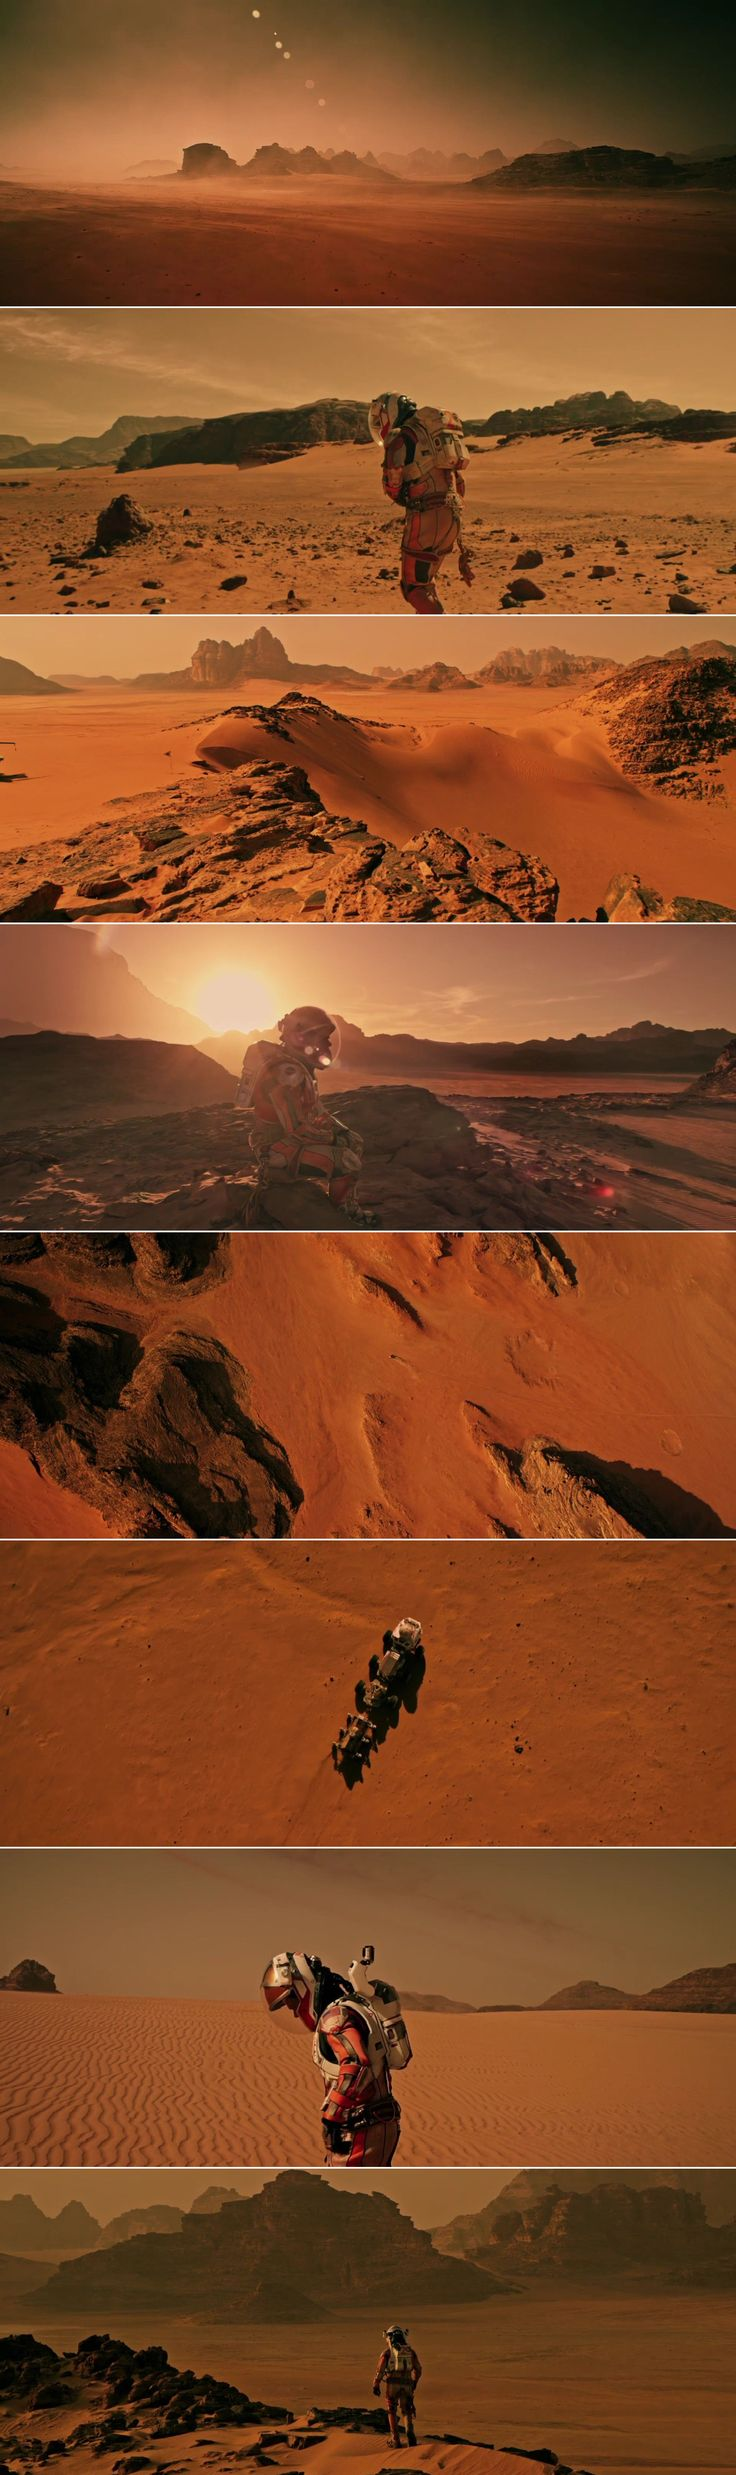 The Martian (2015) - Cinematography by Dariusz Wolski | Directed by Ridley Scott